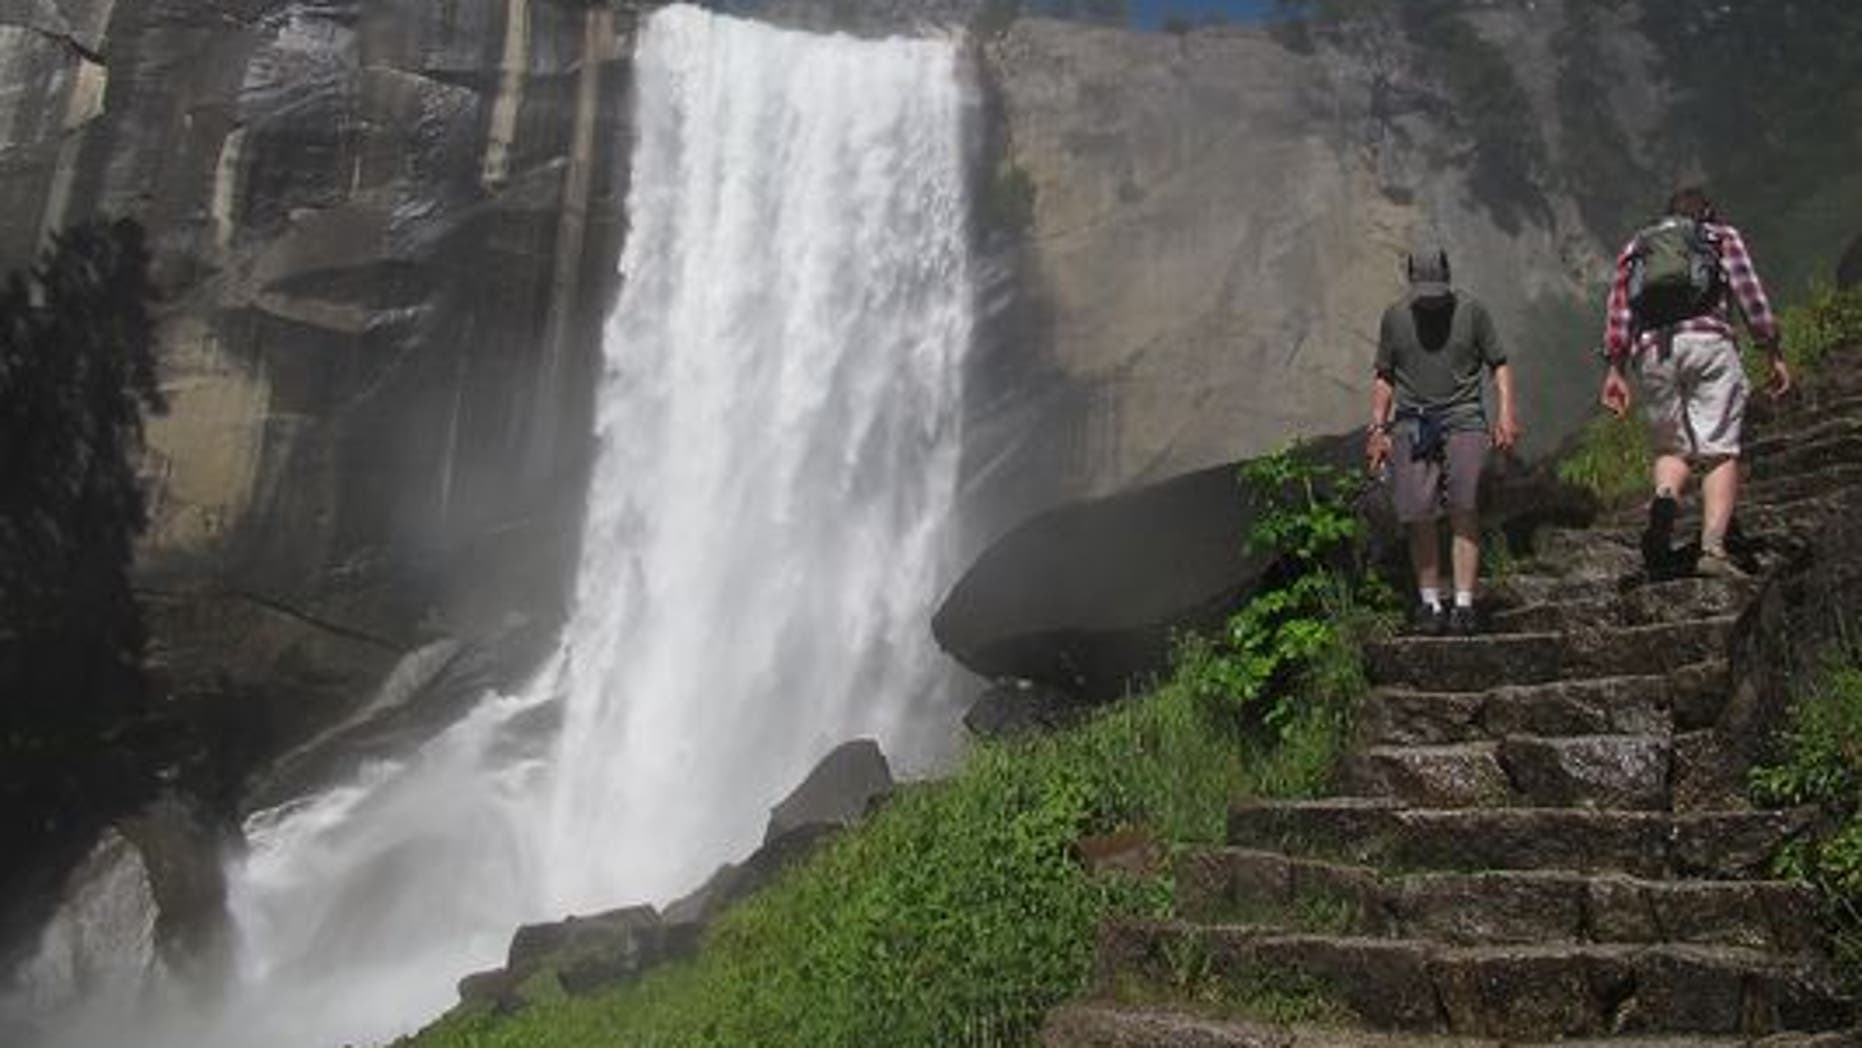 Hikers take on the Mist Trail towards Vernal Falls.